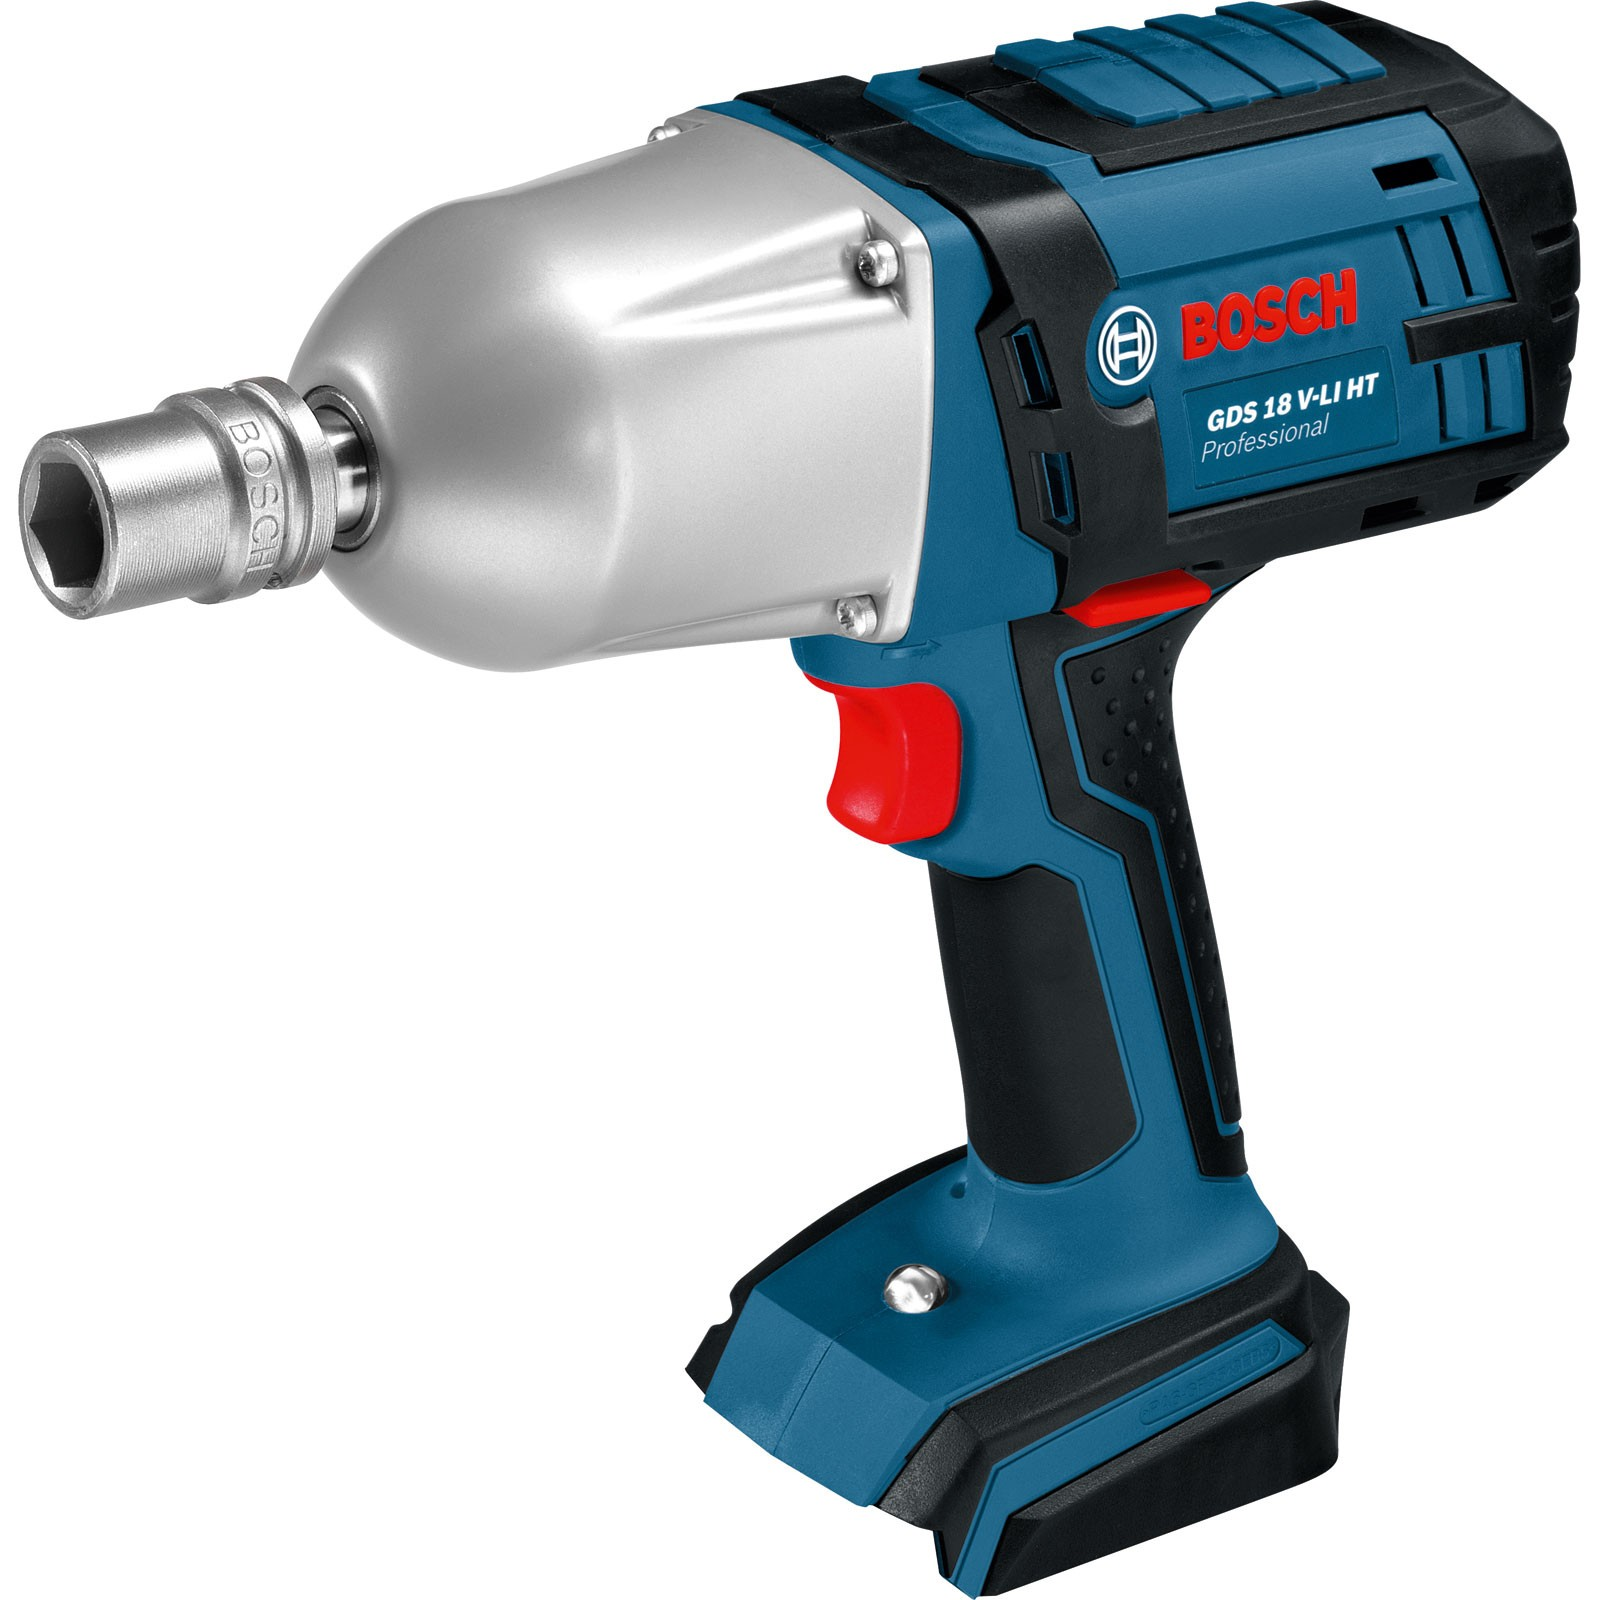 Bosch GDS 18 V-LI HT High Torque Impact Wrench Body Only